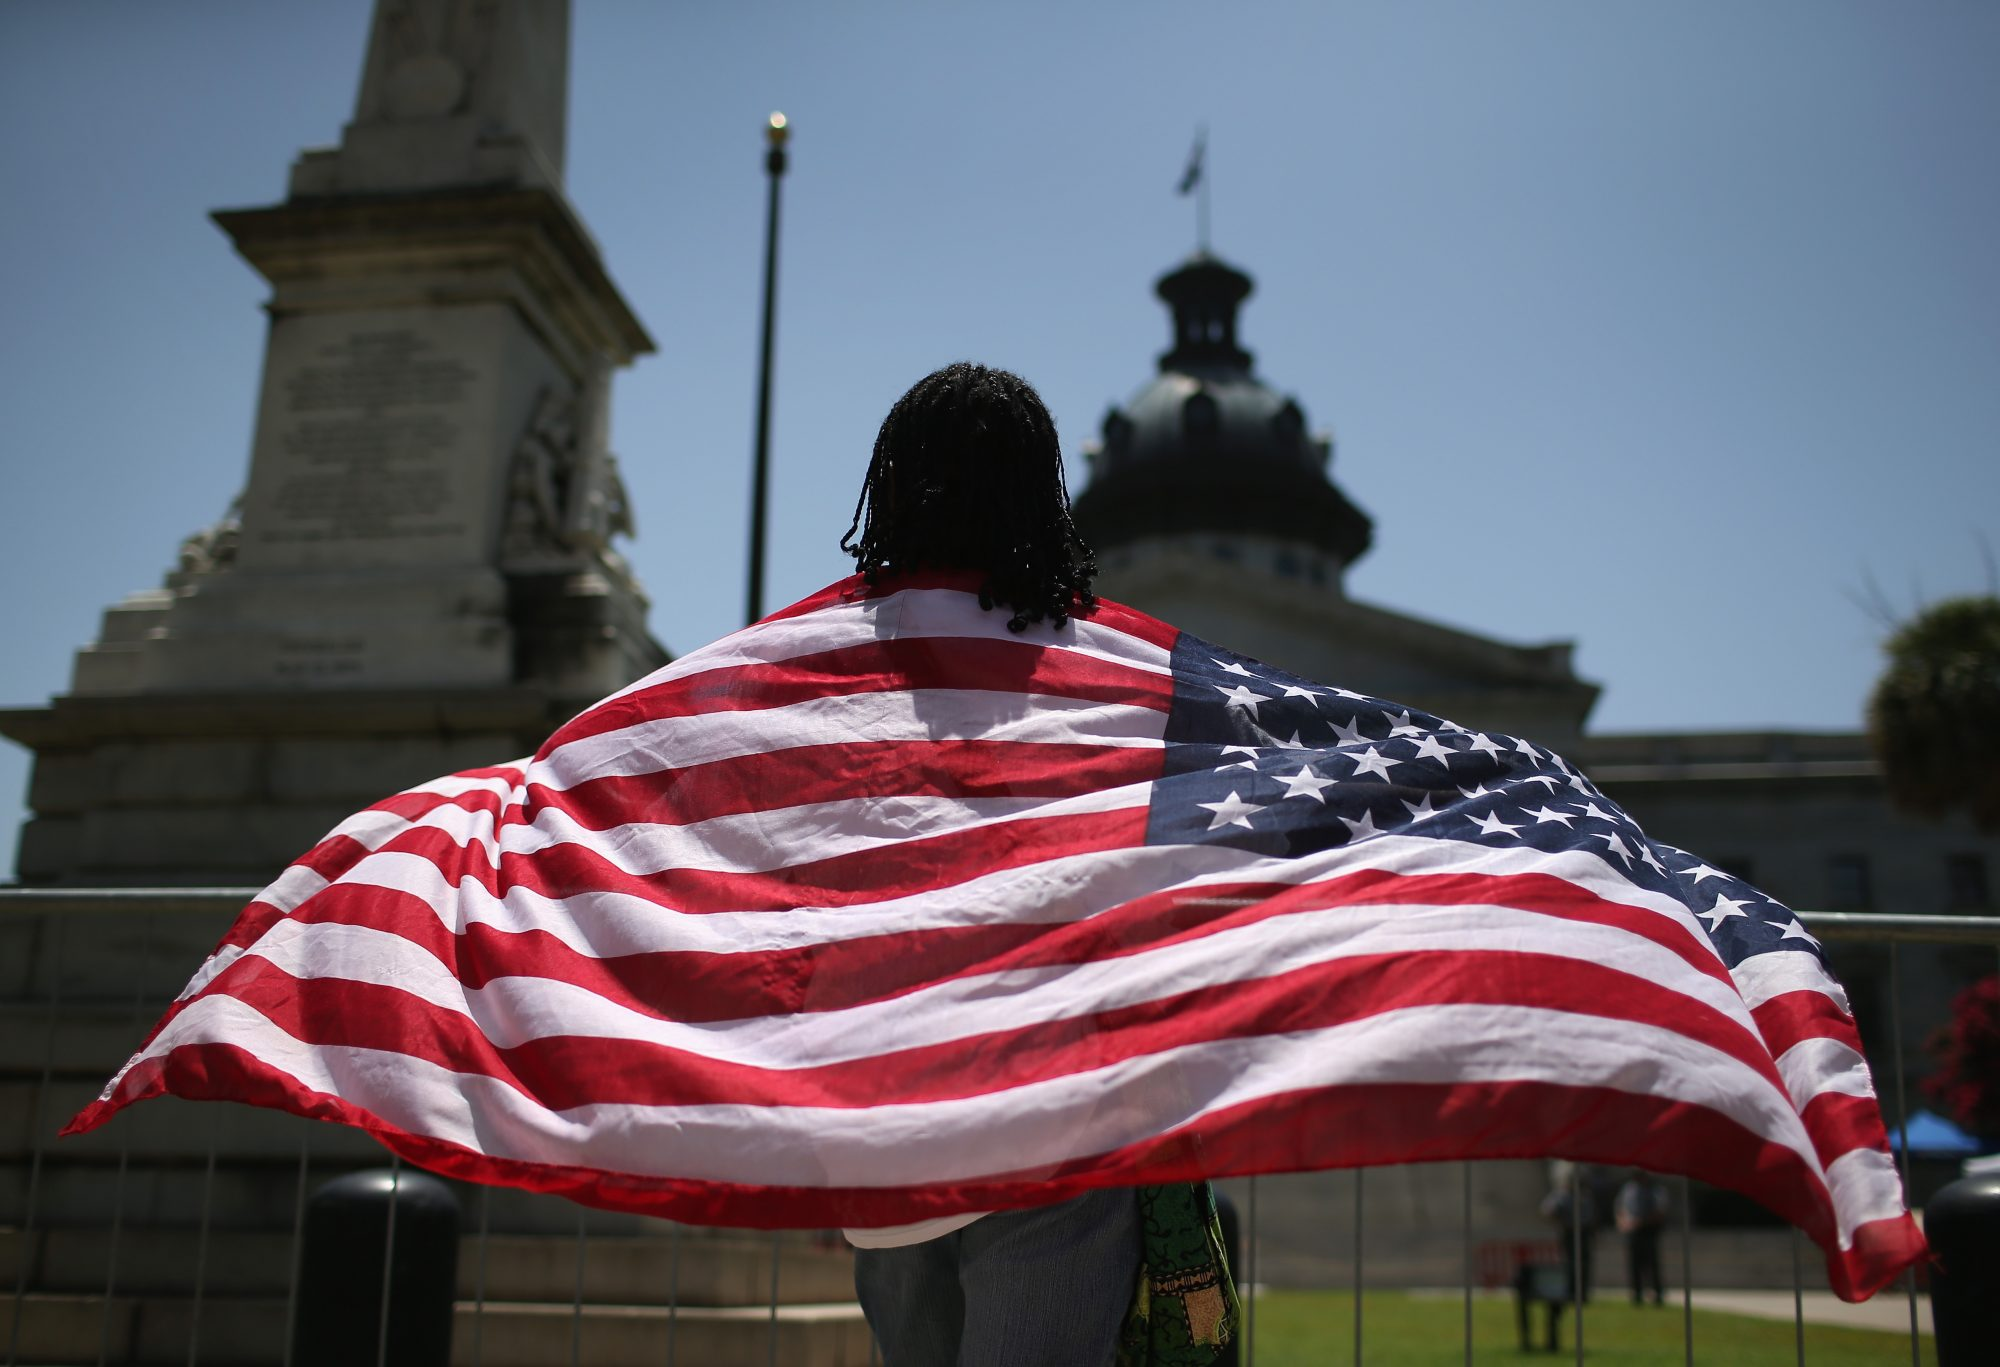 South Carolinan Brenda Brisbon wears the 'Stars and Stripes' after the Confederate 'Stars and Bars' was lowered from the flagpole in front of the statehouse on July 10, 2015 in Columbia, South Carolina.